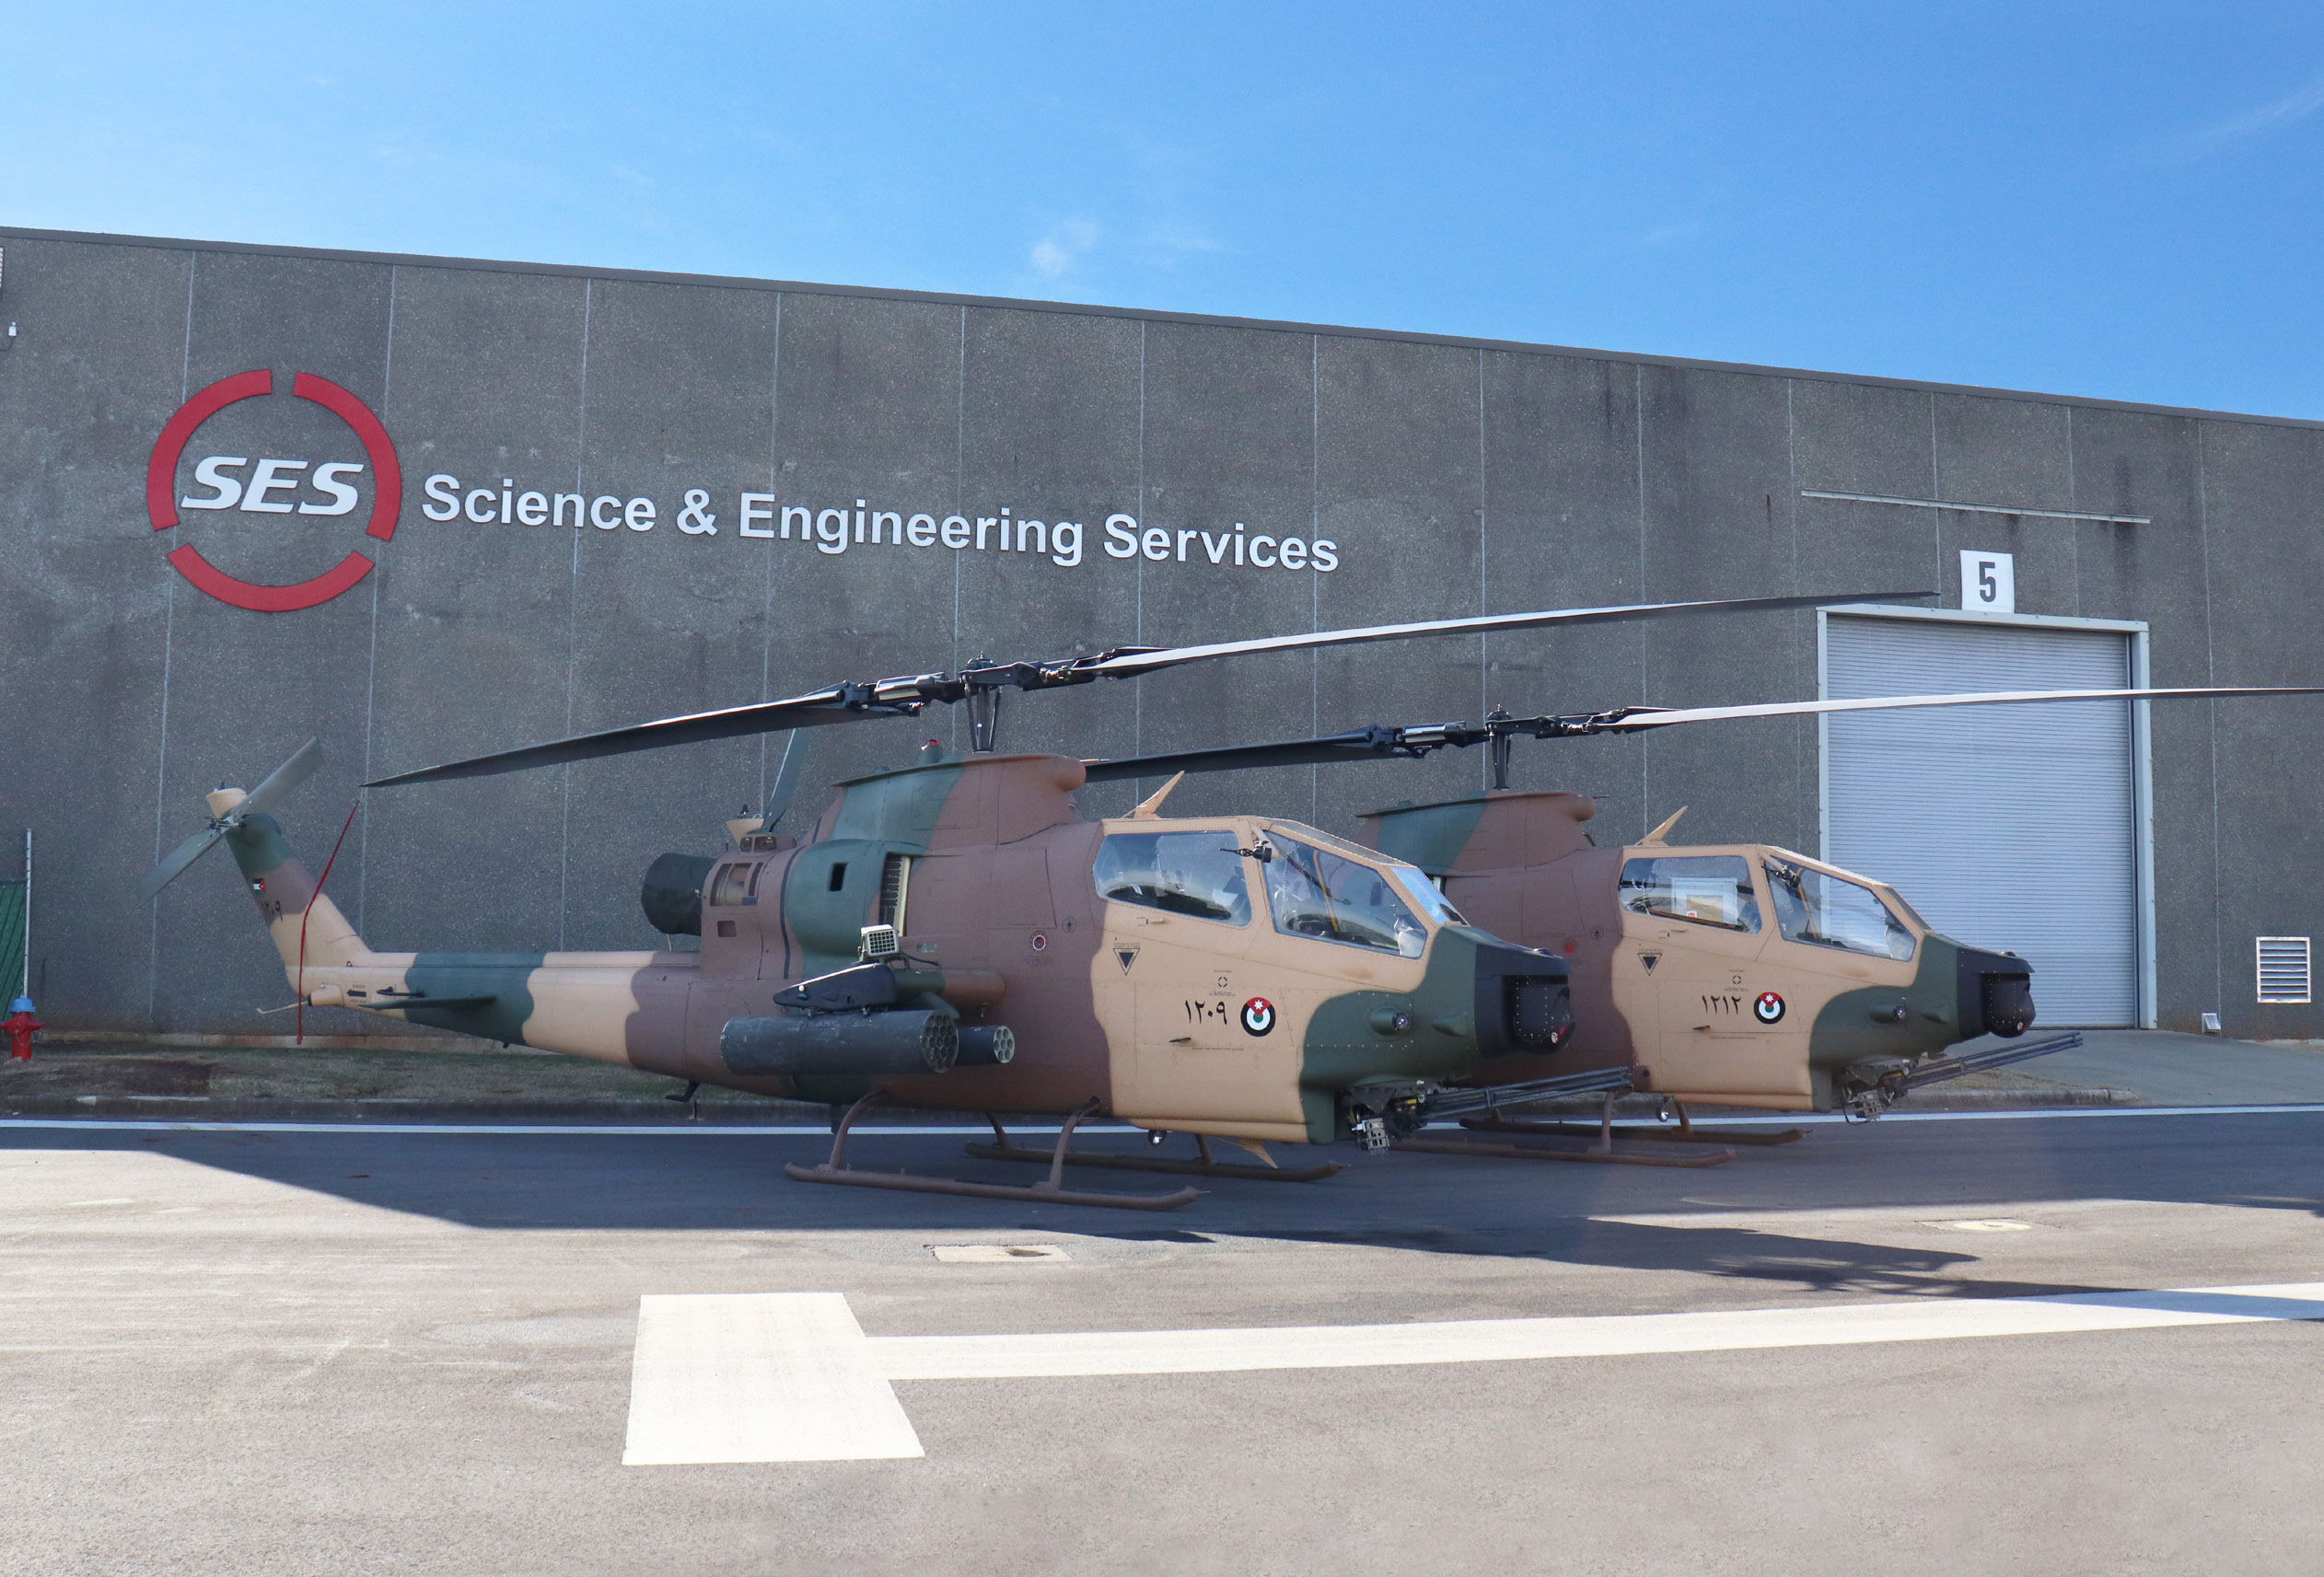 21aed1885b65 Royal Jordanian Air Force Helicopters Upgraded by Science and Engineering  Services LLC and Northrop Grumman Begin. photo